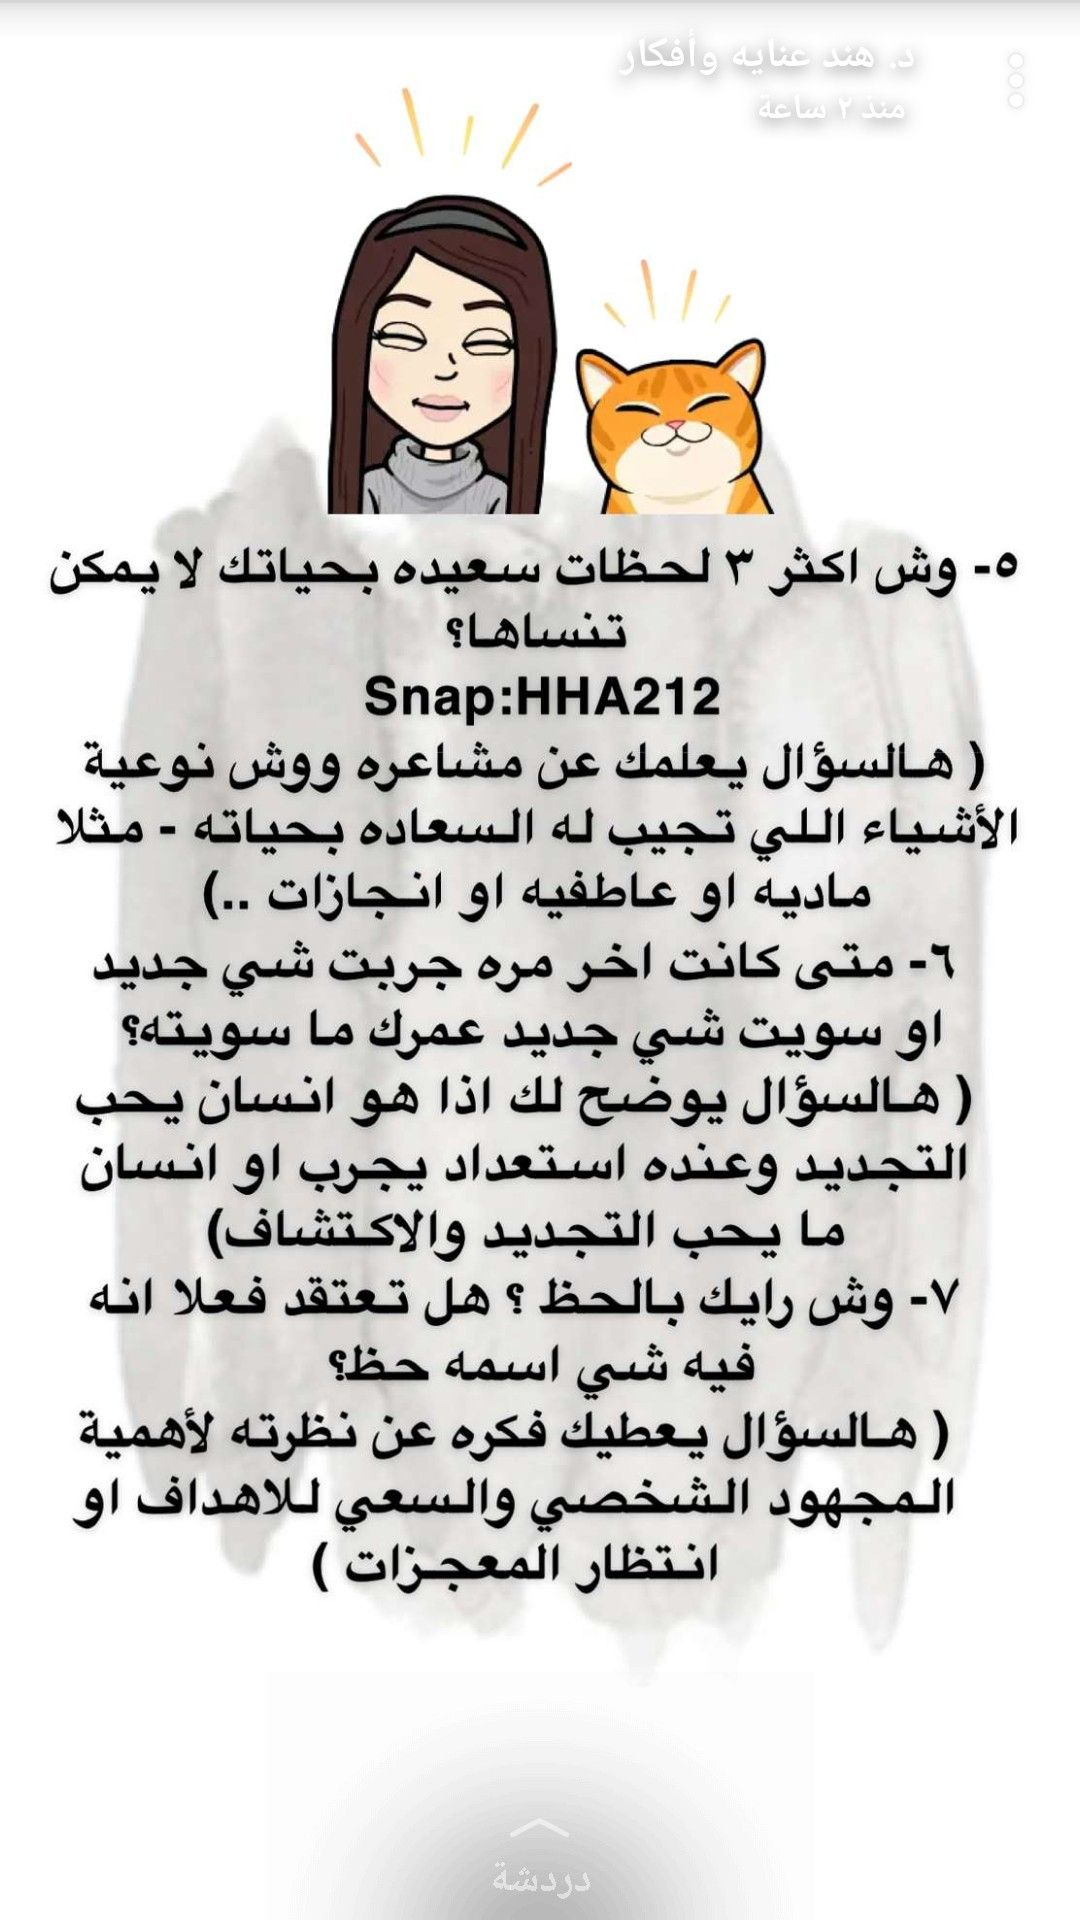 Pin By Fatimahazim On دورة د هند Married Advice Marriage Life Life Habits